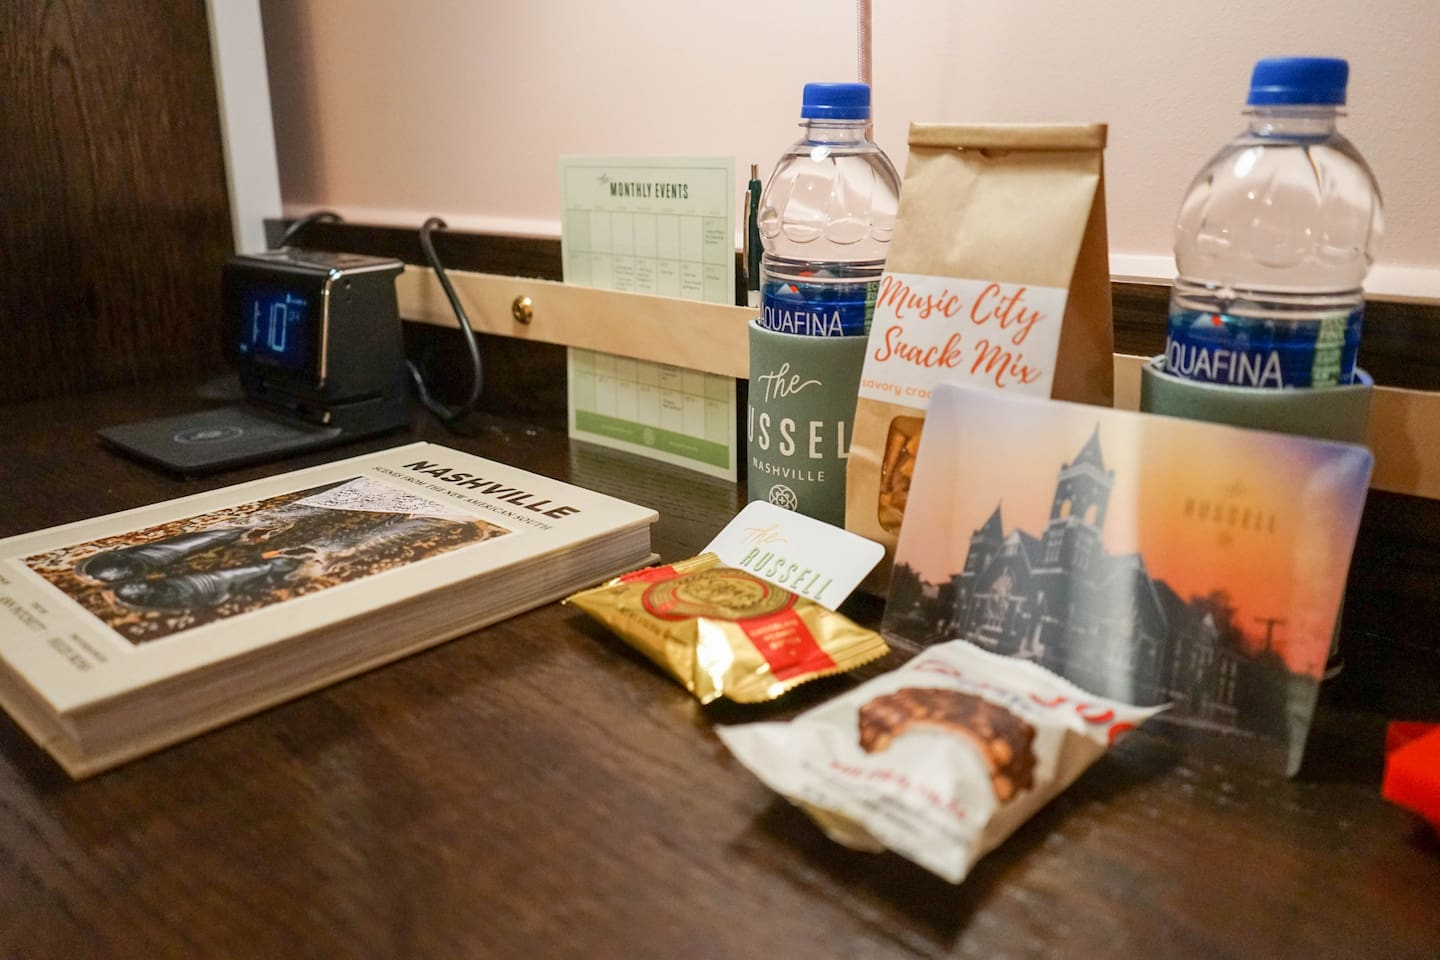 A snack basket as well as a guide for food and events in Nashville comes complementary with every room.